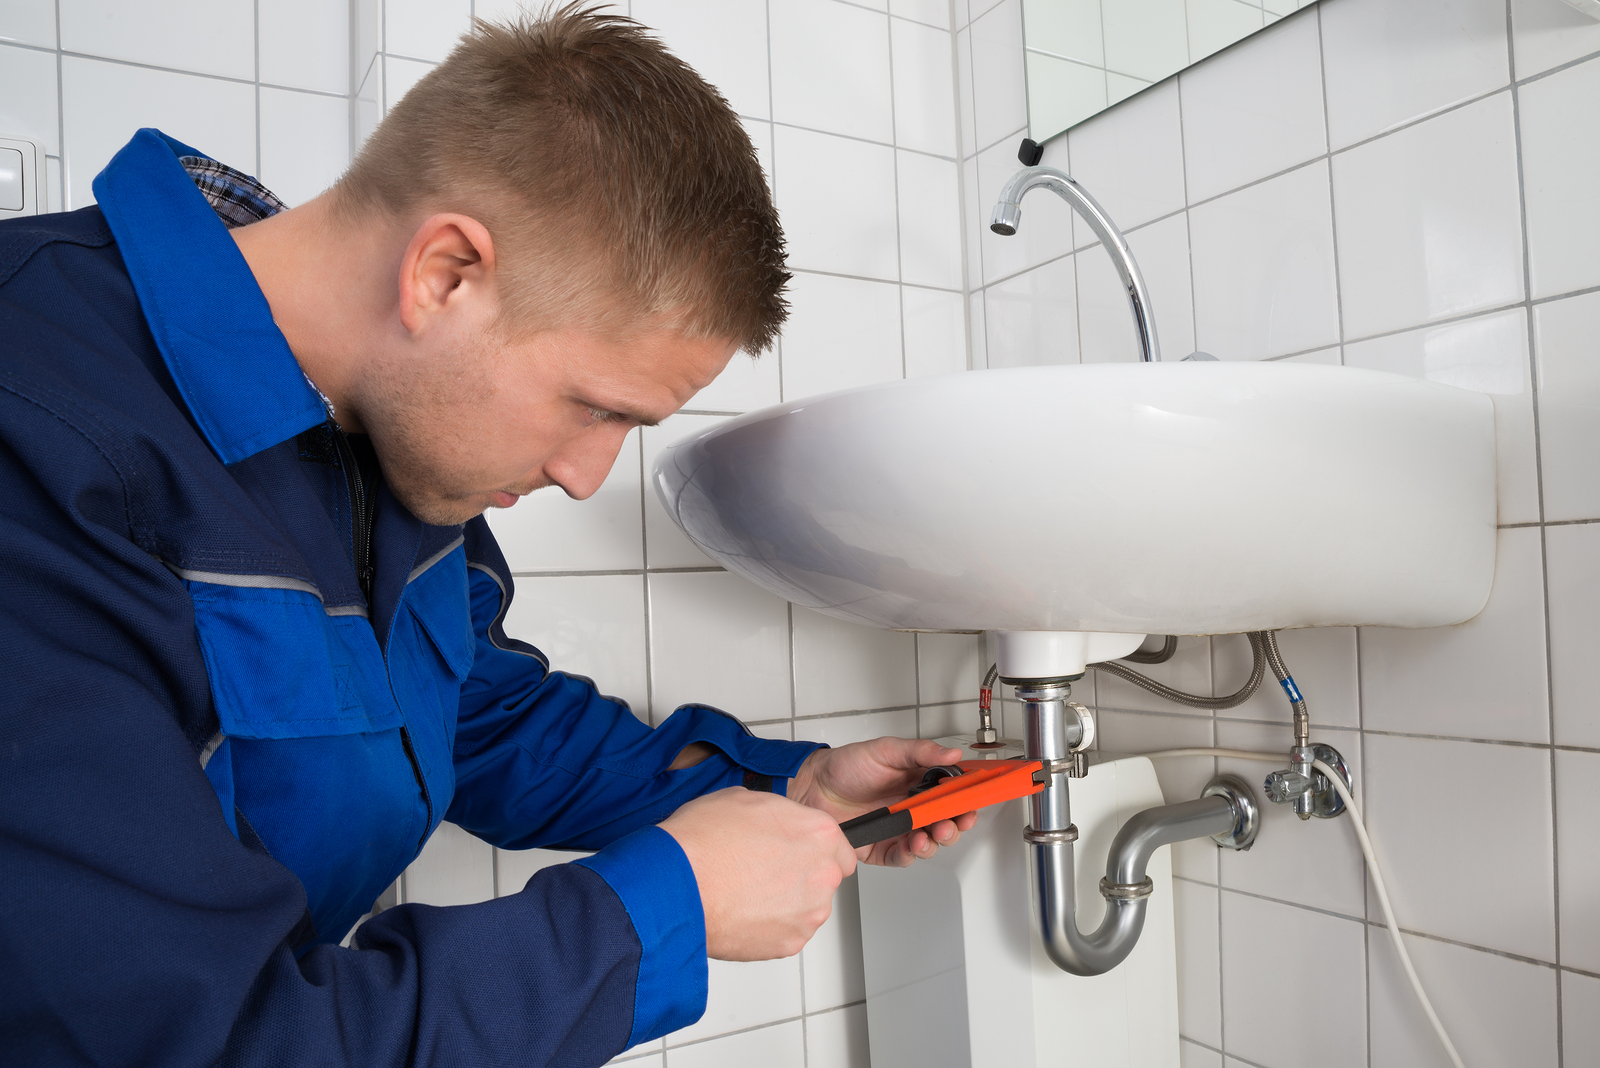 Male Plumber Fixing Sink In Bathroom